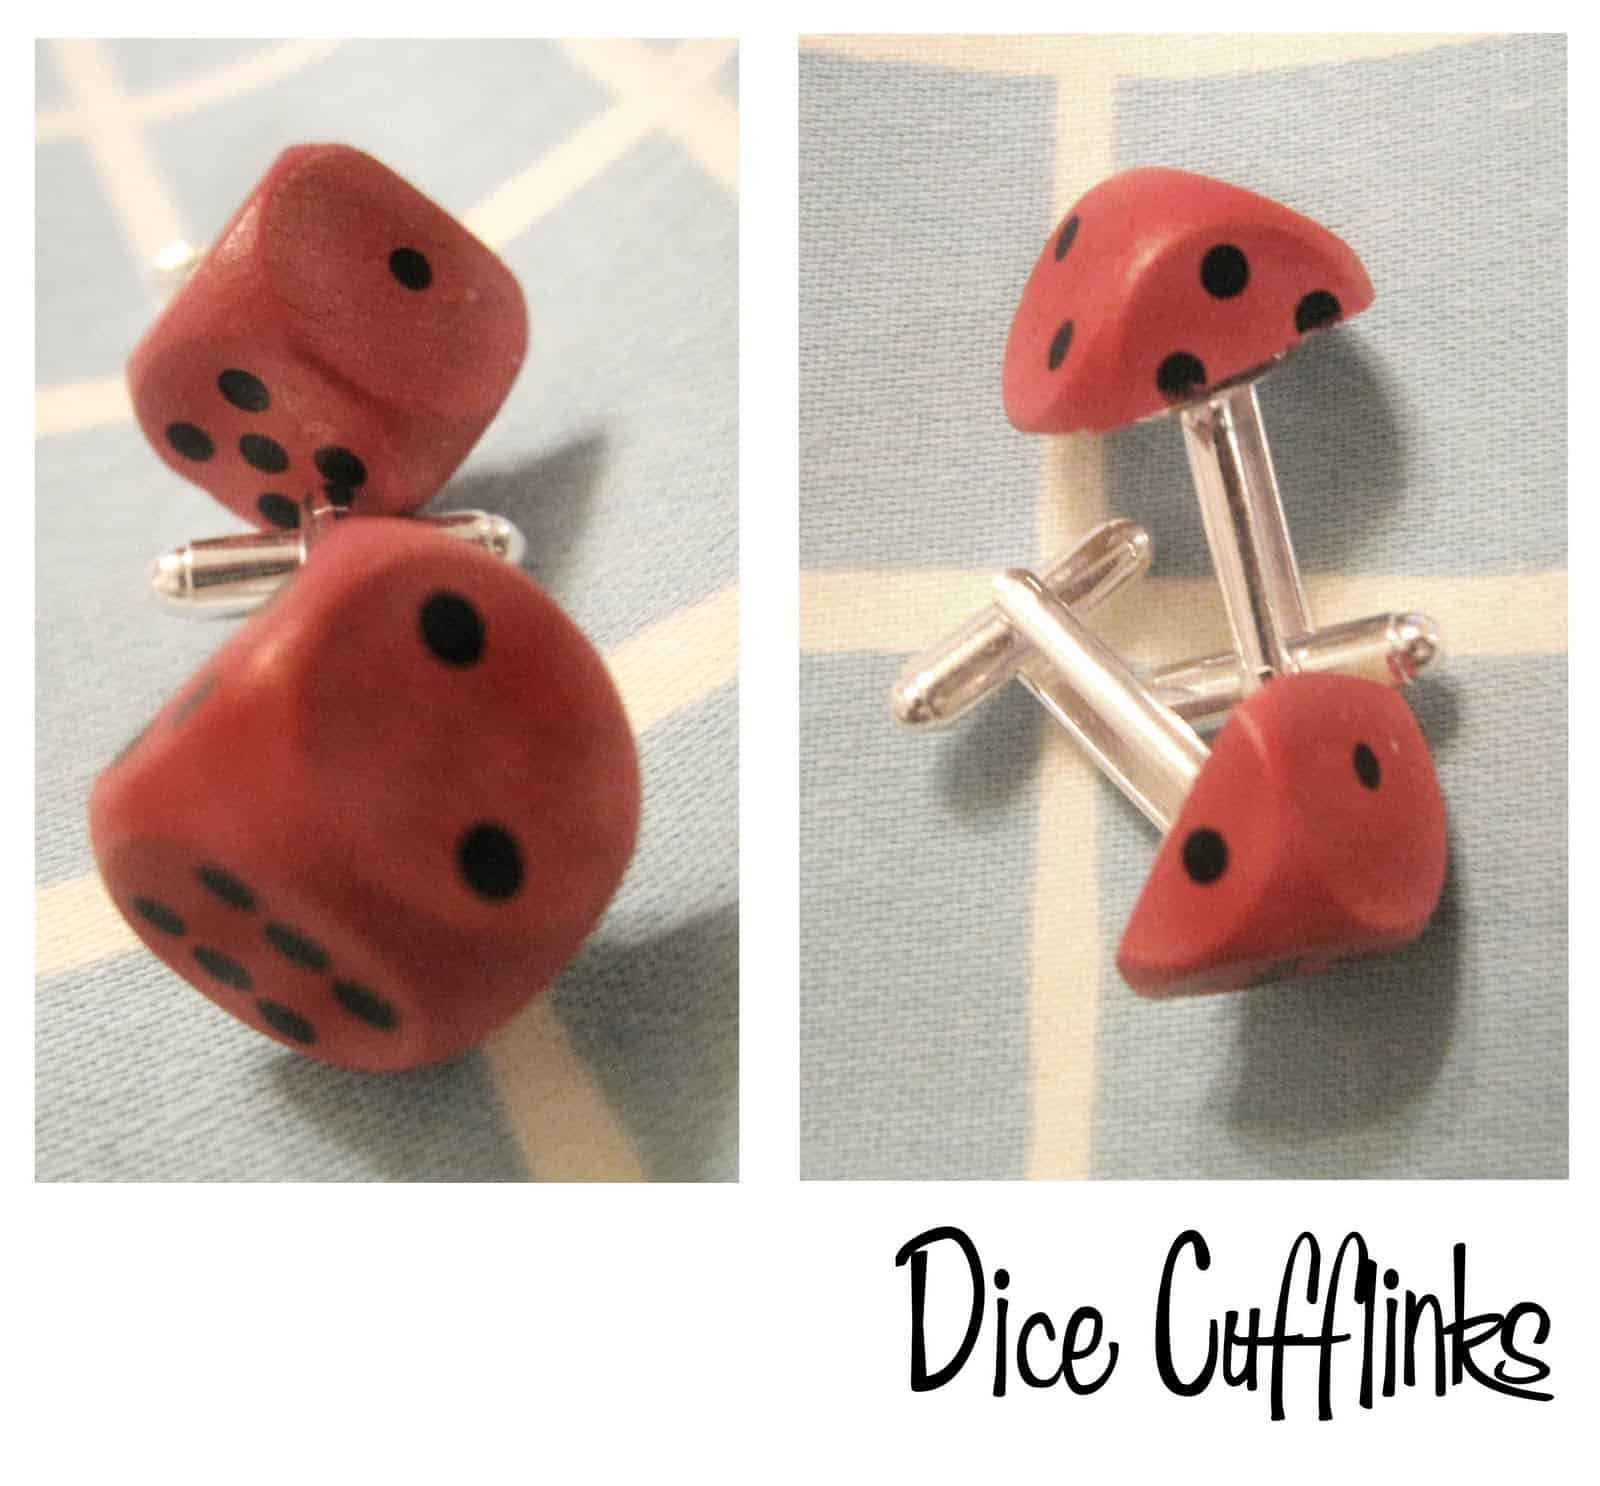 Cufflinks made from dice and watch parts